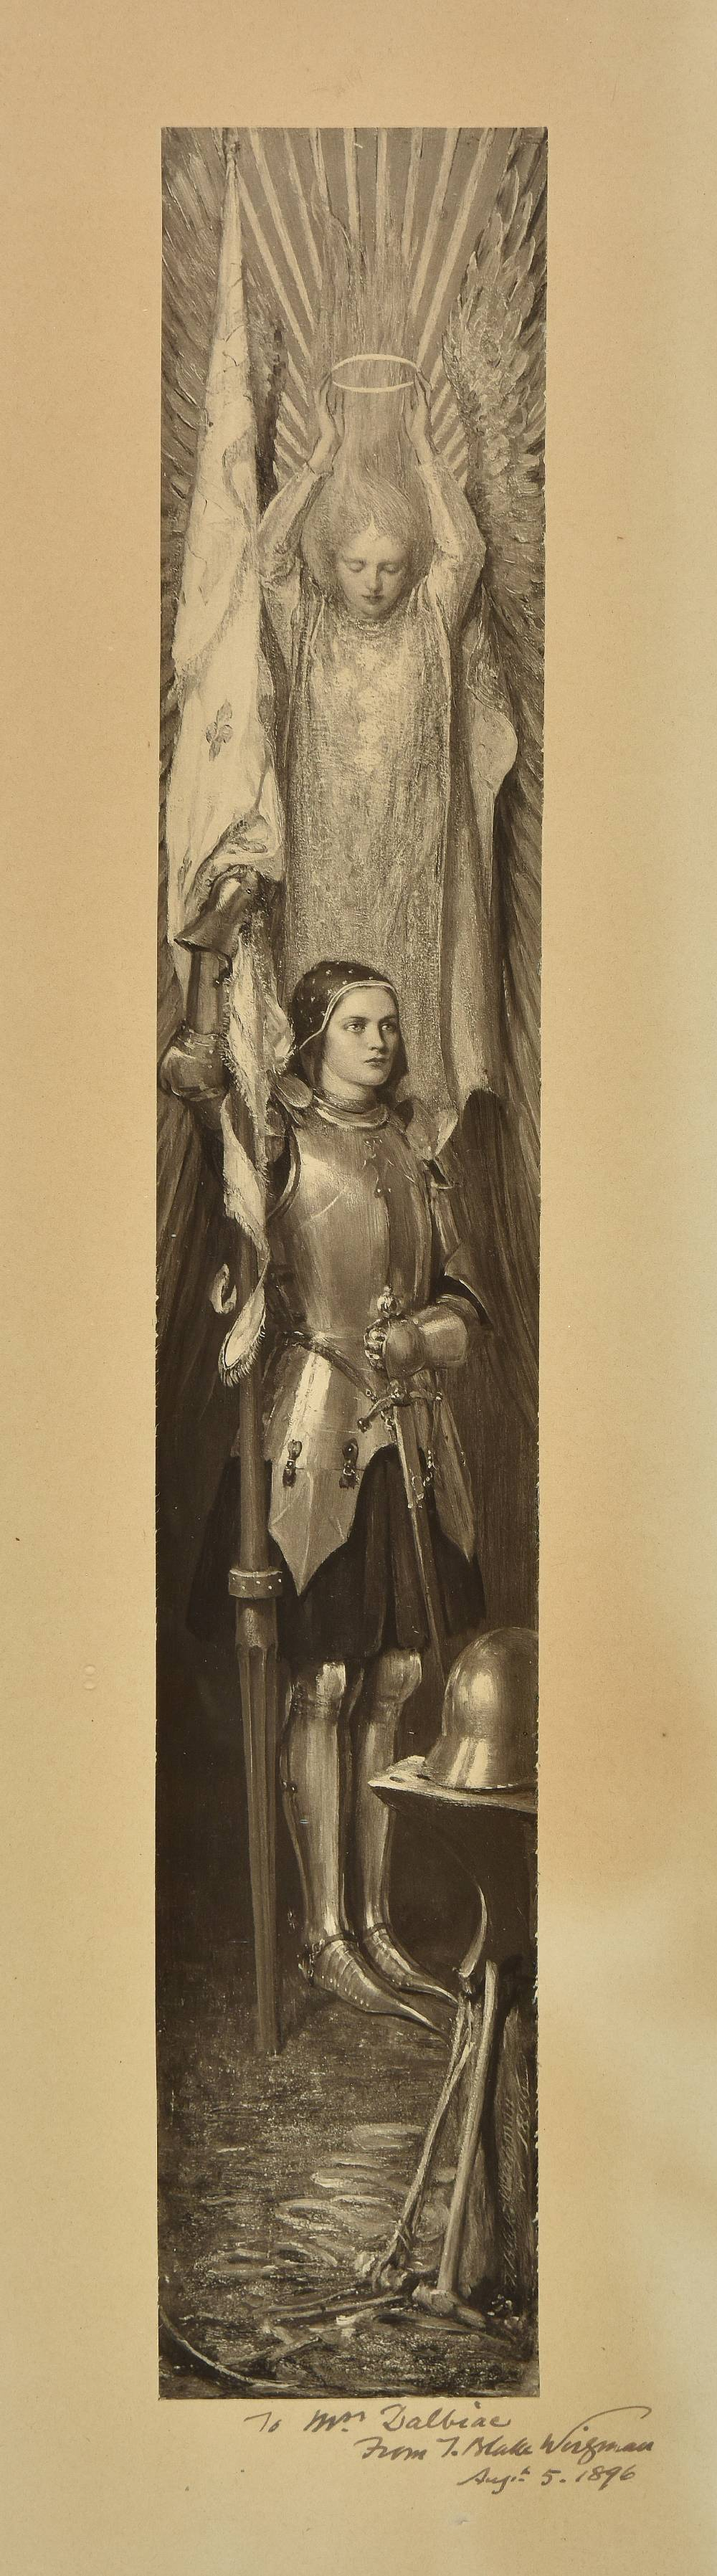 Lot 49 - *Wirgman (Theodore Blake, 1848-1925). Jeanne d'Arc, circa 1890s, photographic reproduction of the